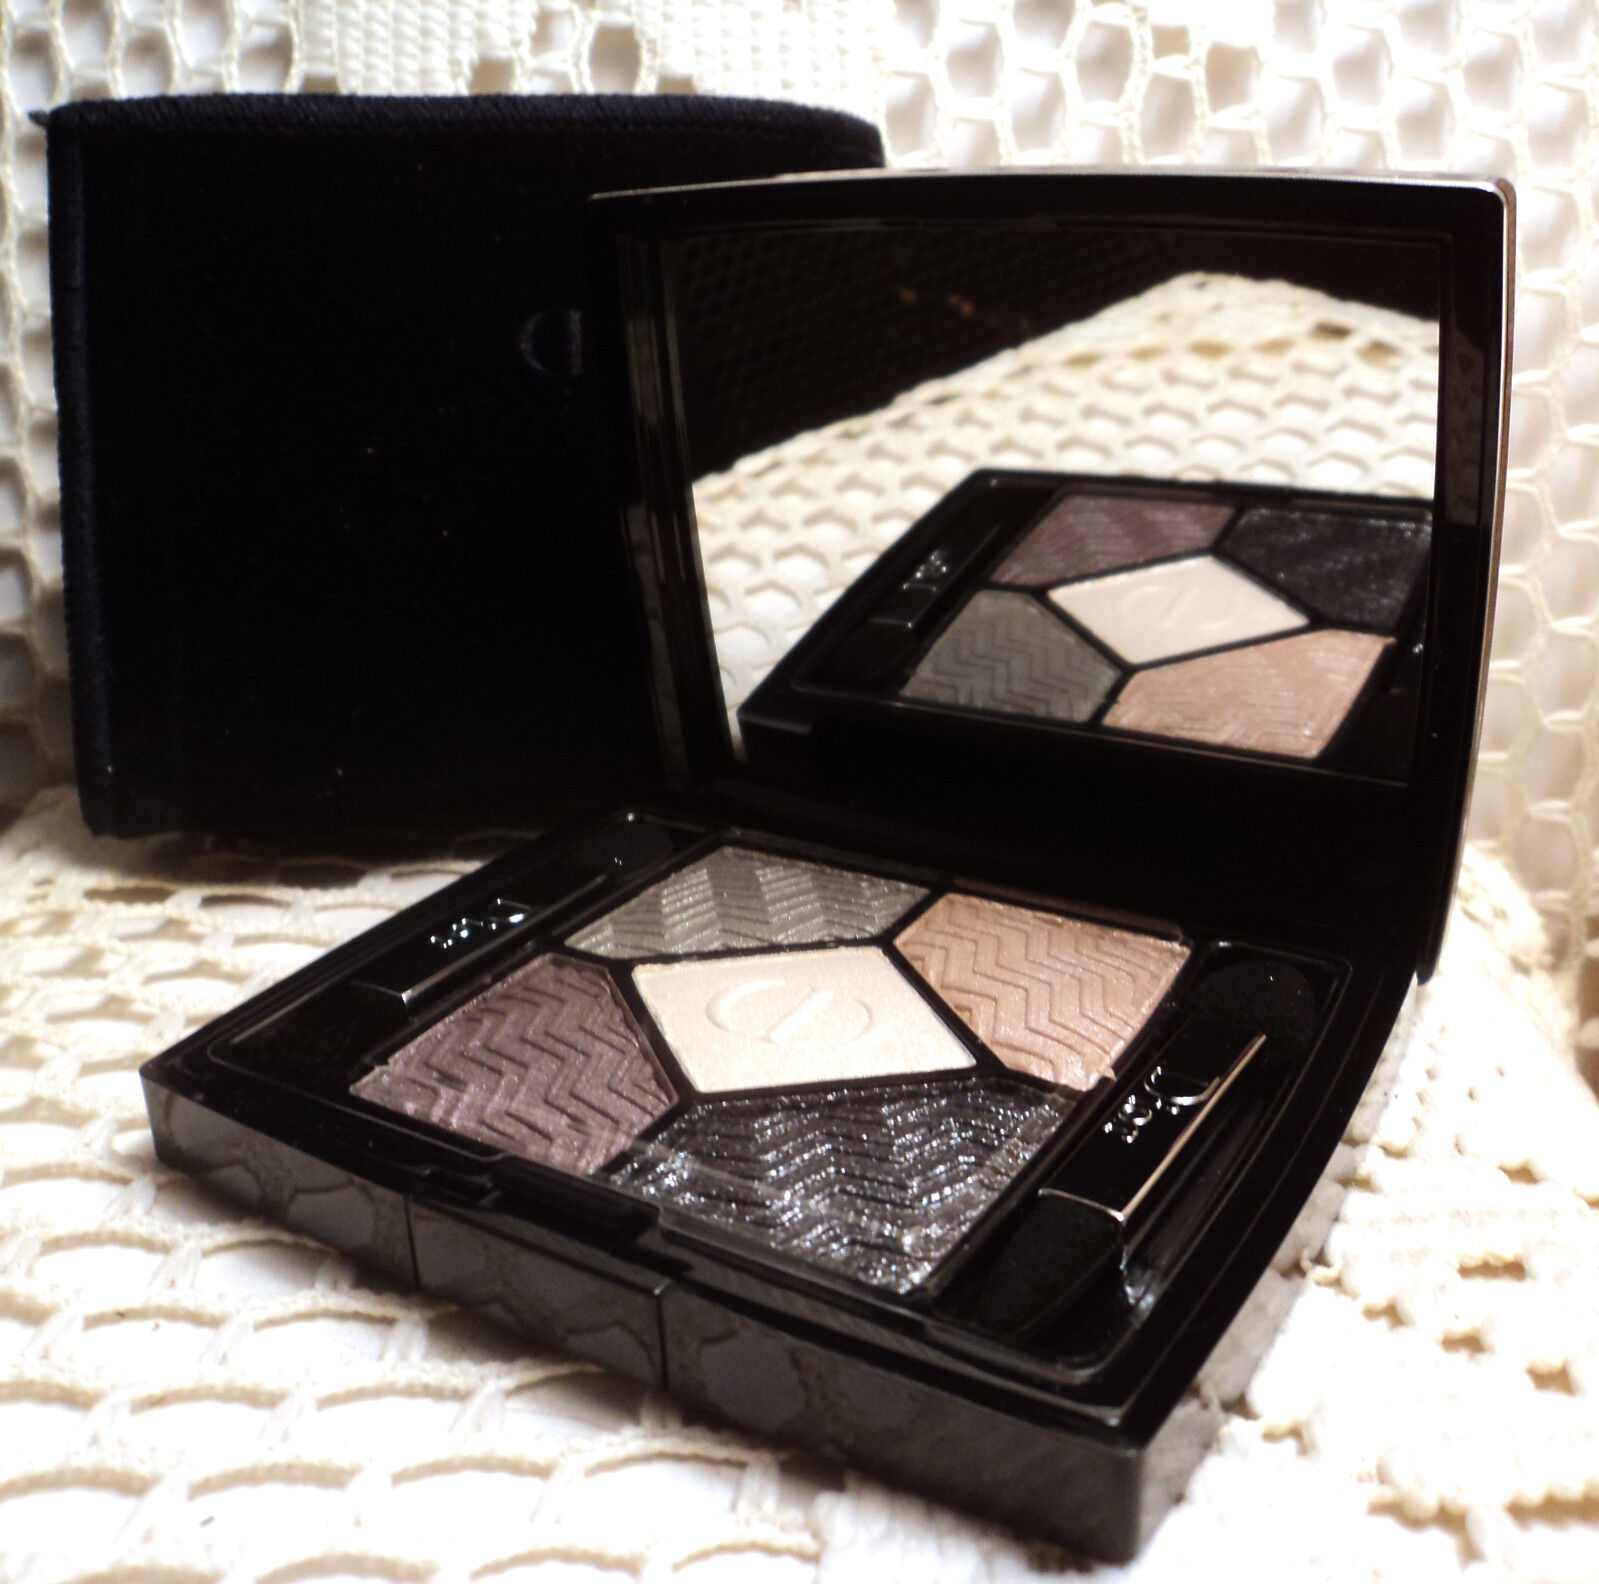 Christian Dior 5 Couleurs State of Gold Palette - 576 Eterna